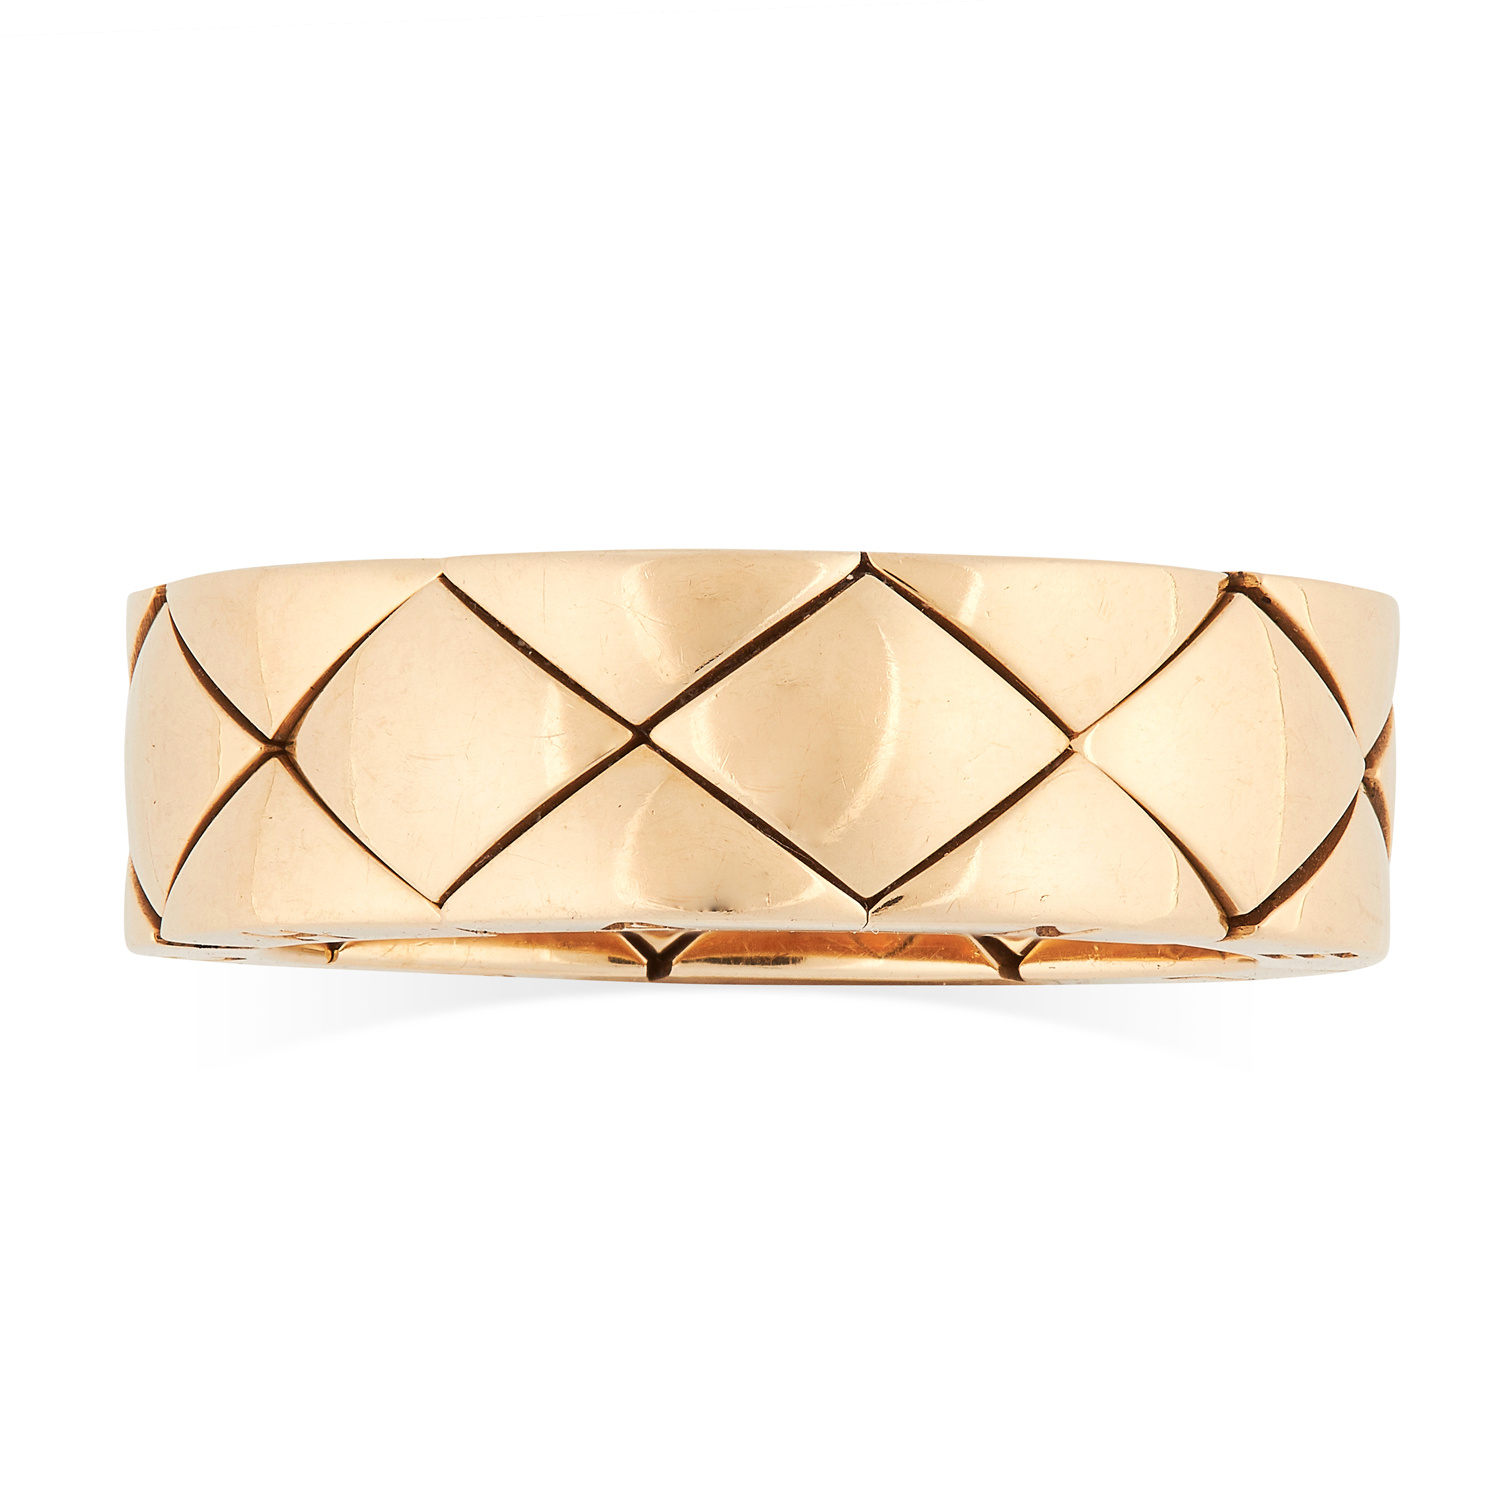 A COCO CRUSH DRESS RING, CHANEL in 18ct yellow gold, the band comprised of articulated quilted